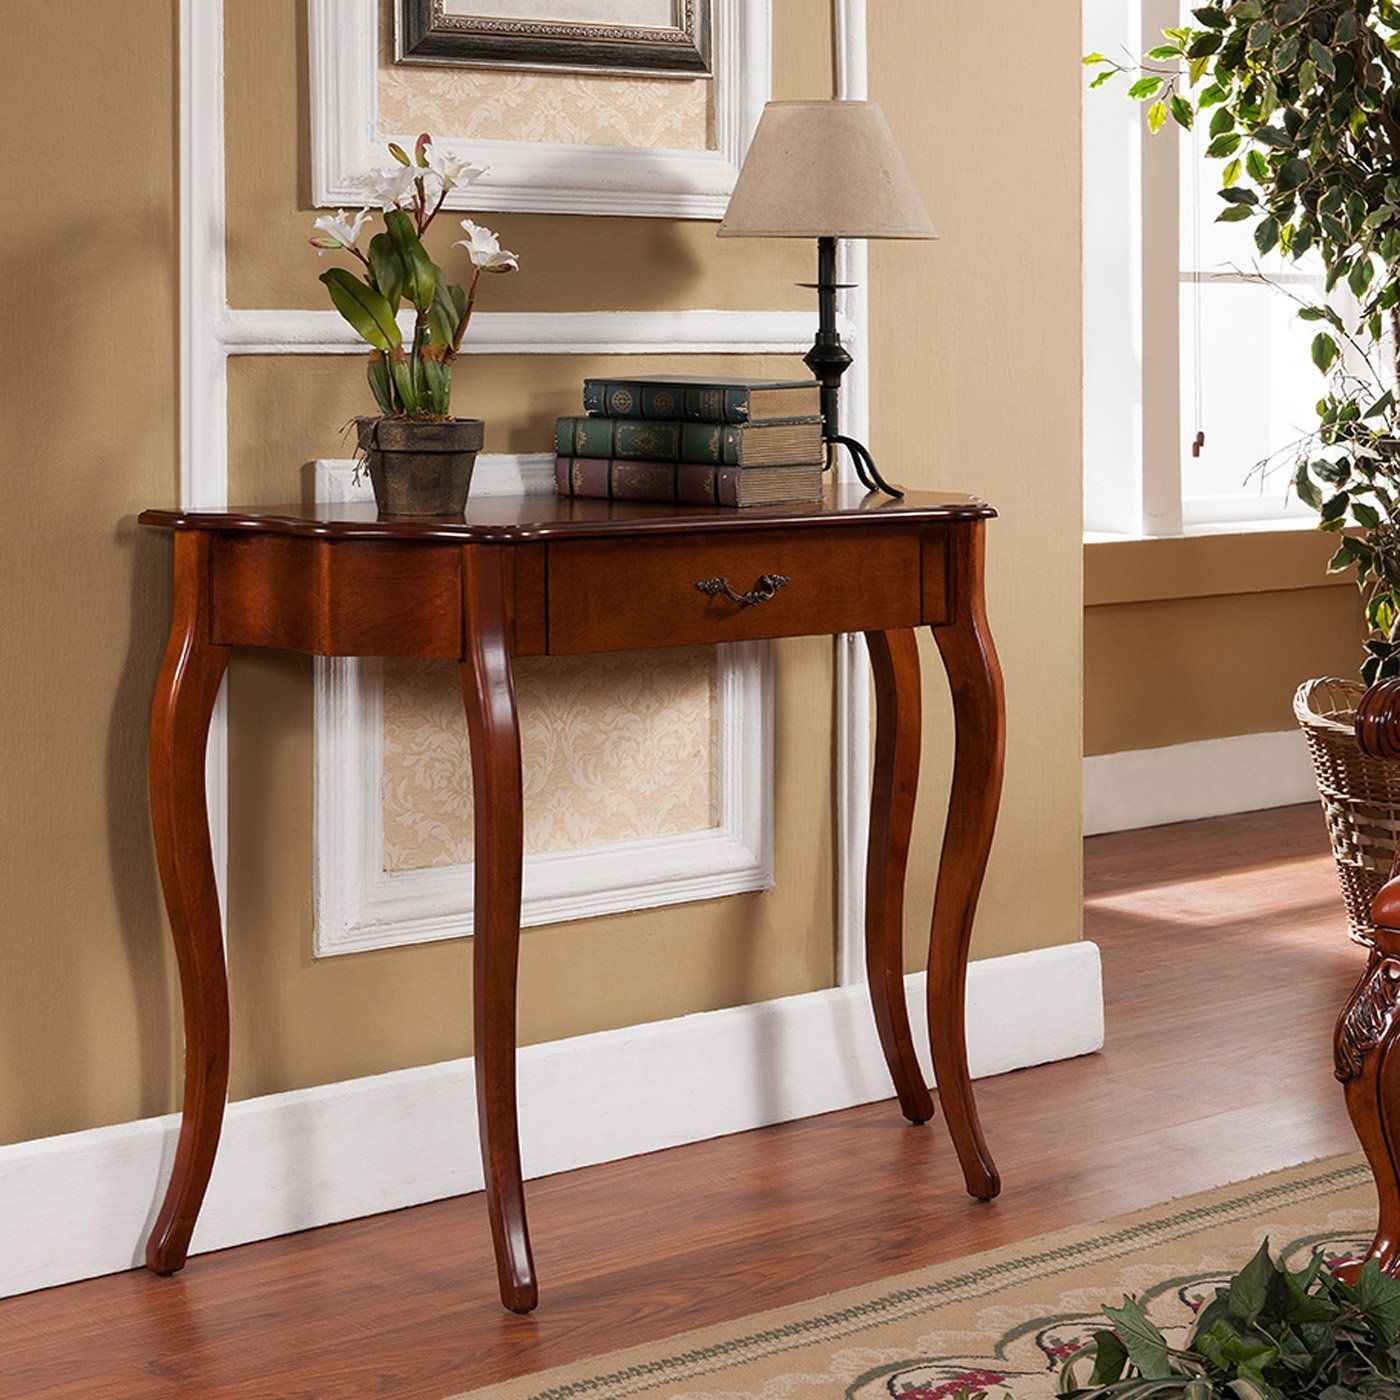 Console Table Wood Curved Elegant Accent Entry Cherry: All Things Cedar Curved Console Table In 2020